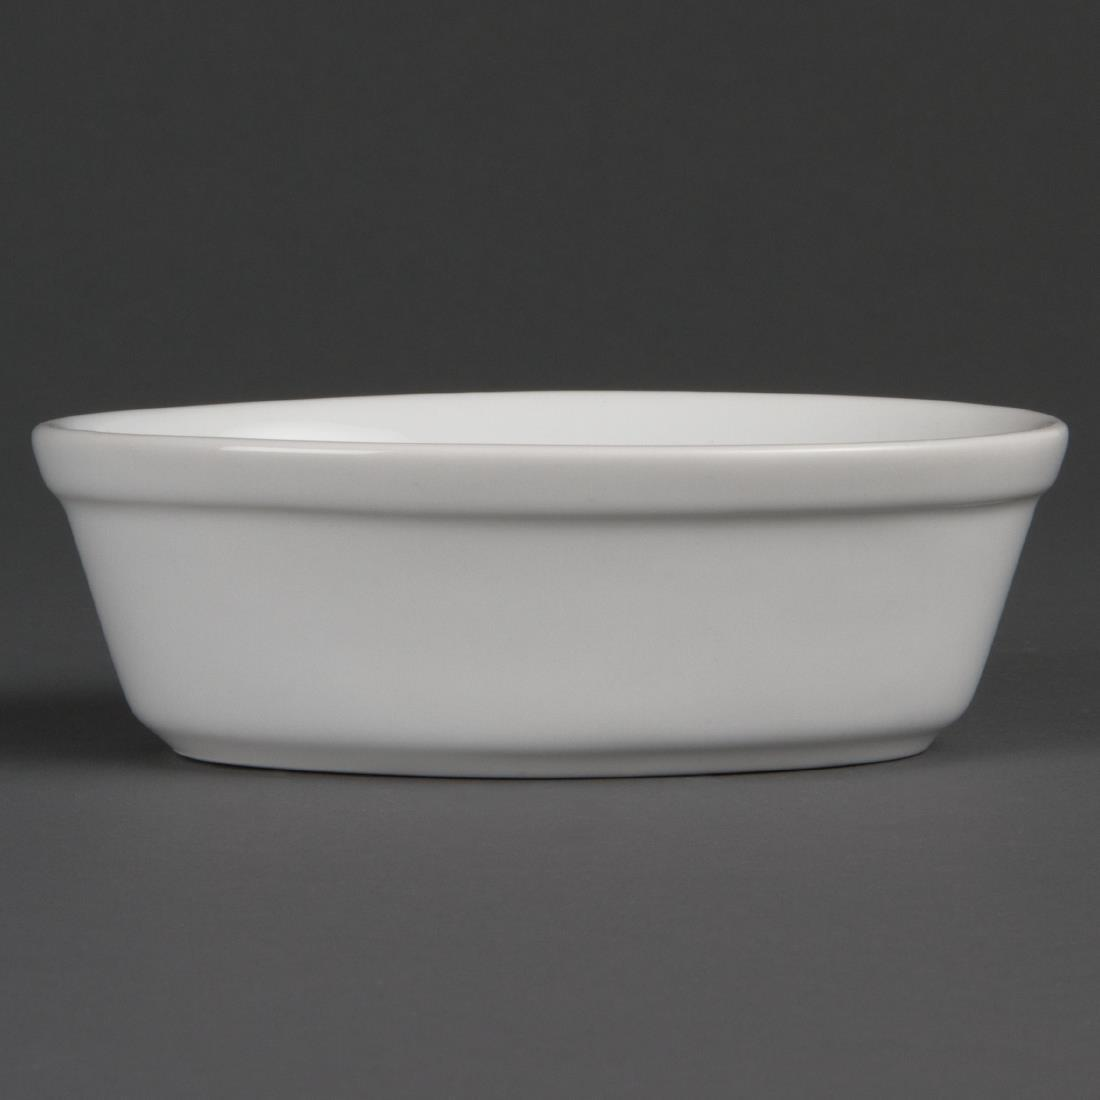 Olympia Whiteware Oval Pie Bowls 161mm